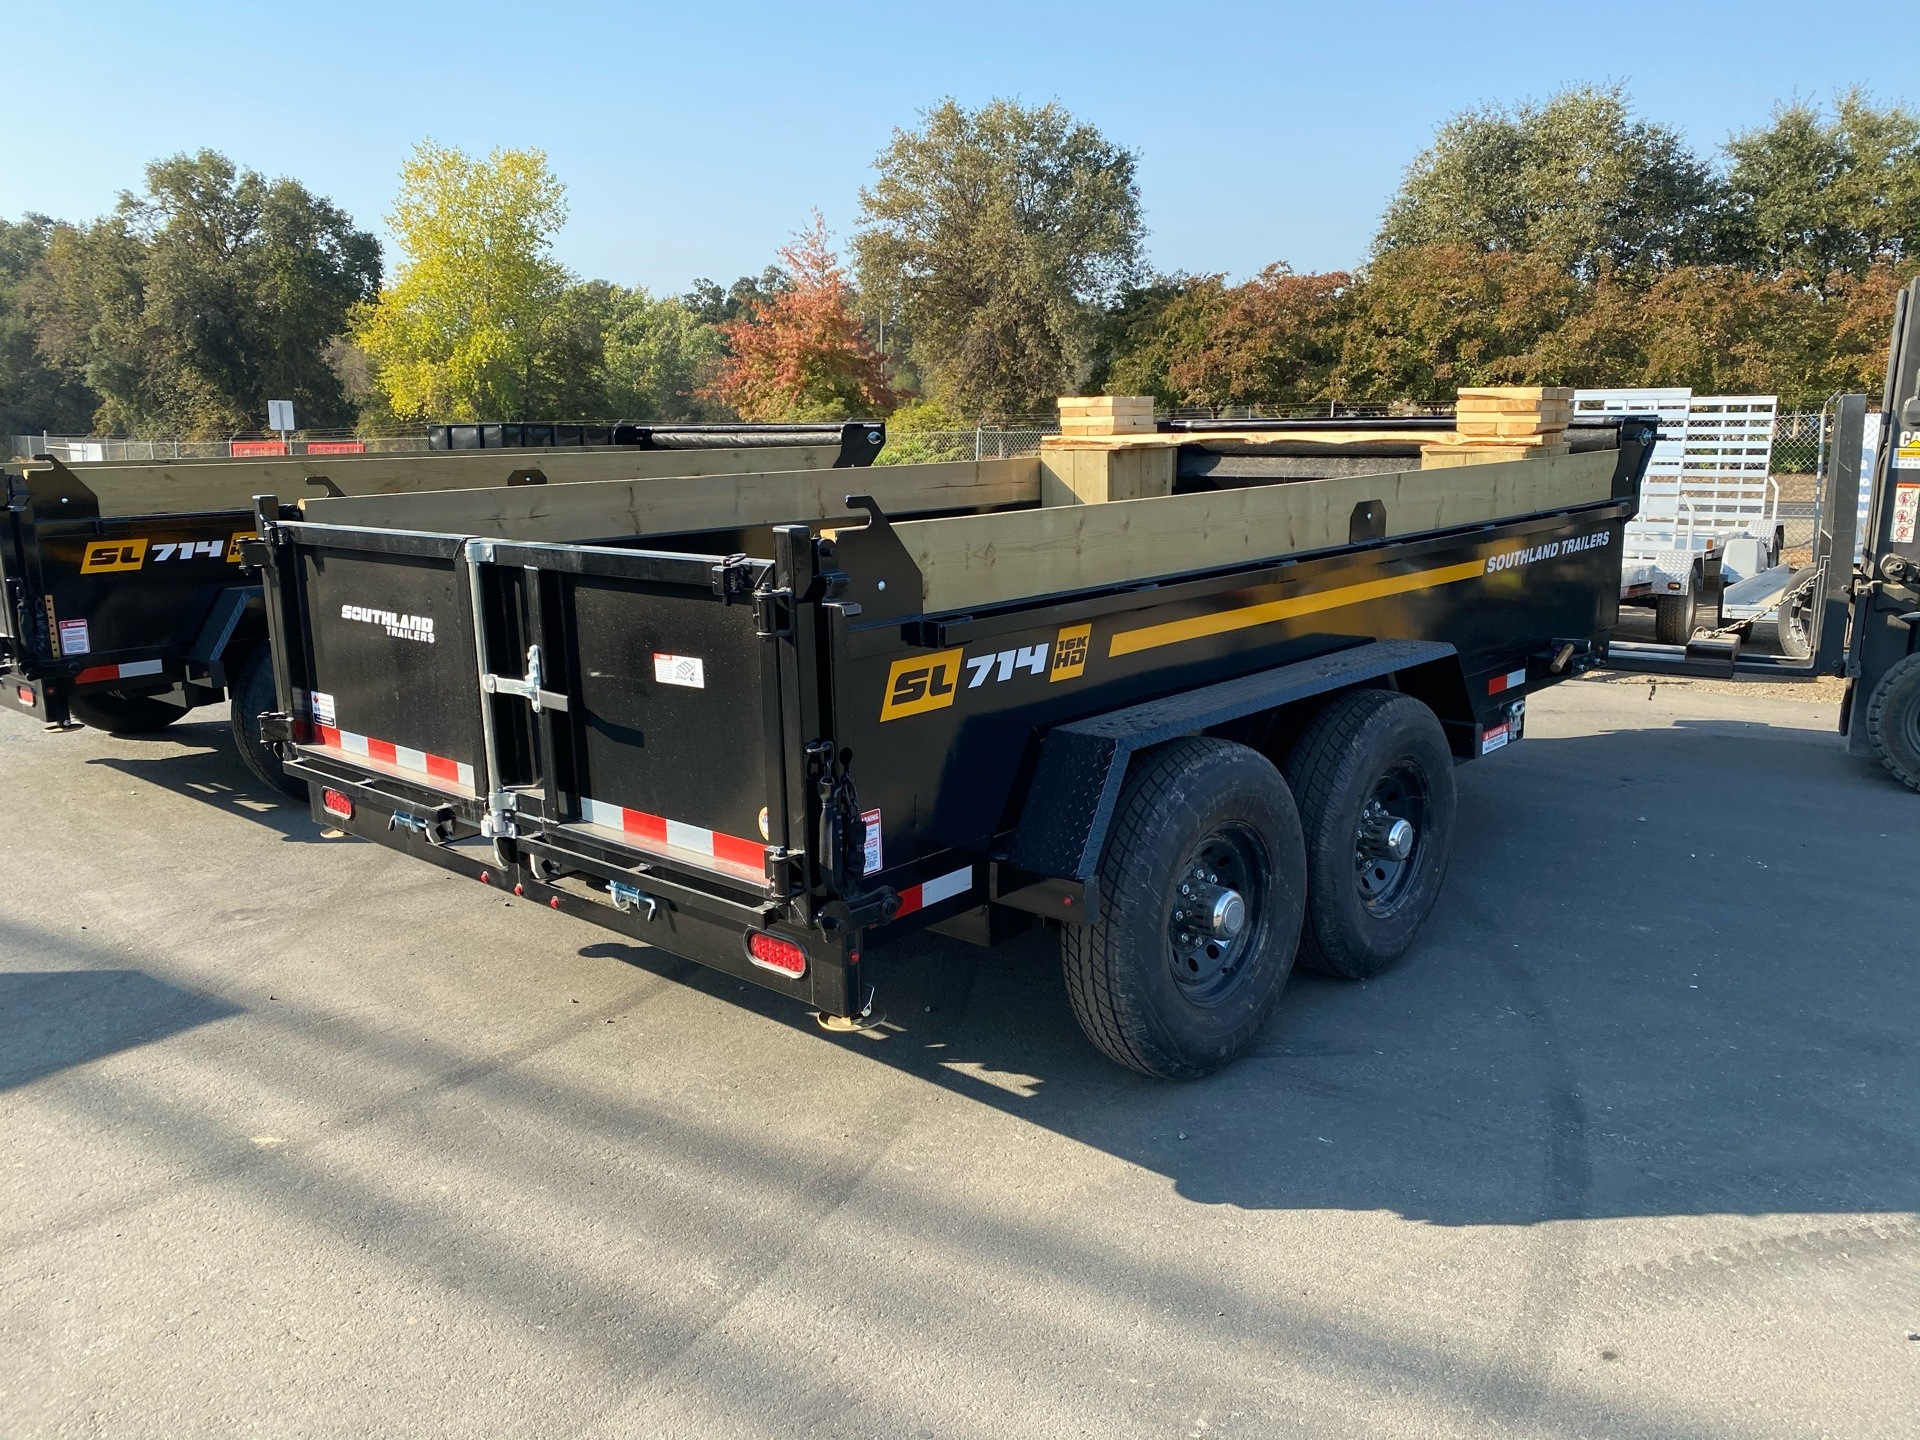 2021 SOUTHLAND TRAILER CORP SL714 16K DUMP TRAILER in Acampo, California - Photo 7